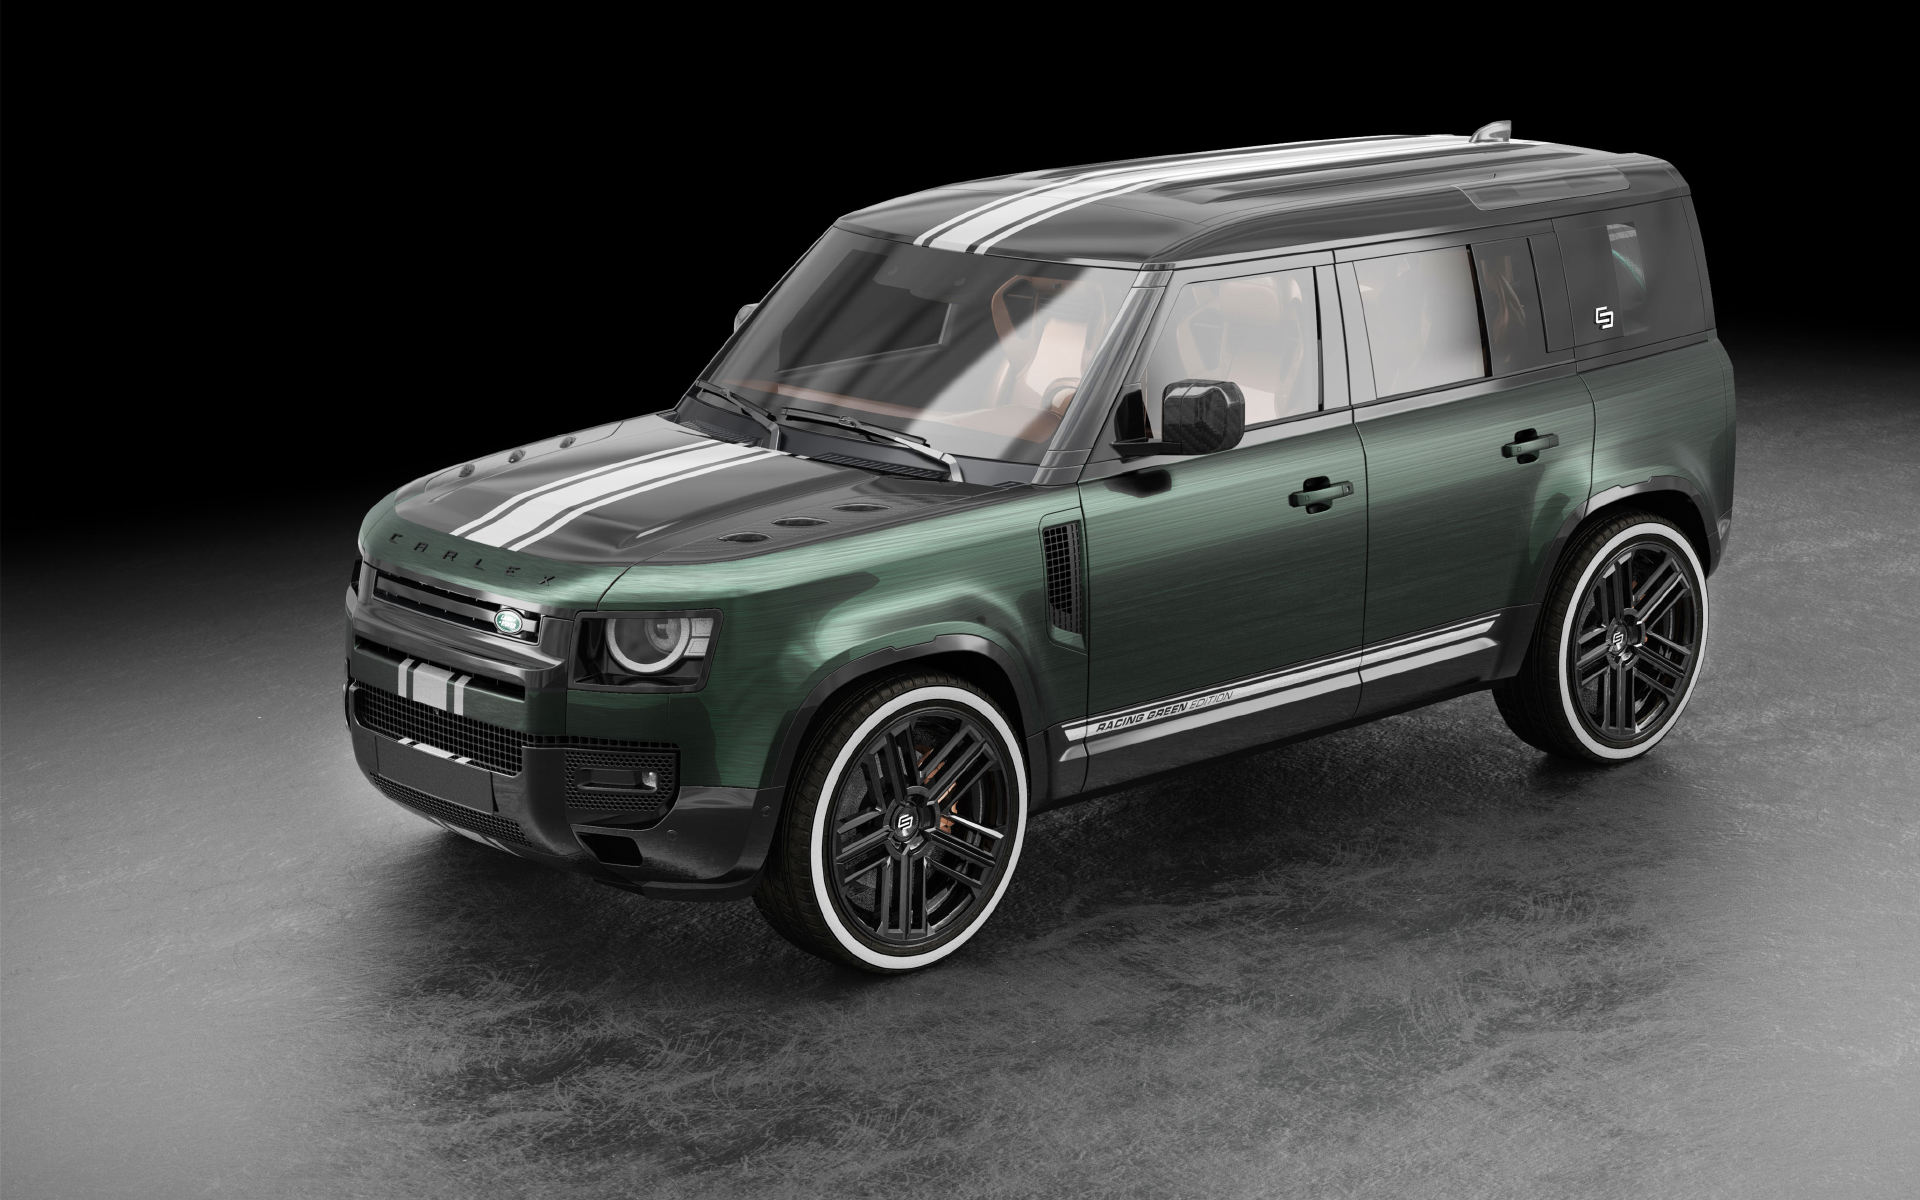 Land Rover Defender Racing Green Edition